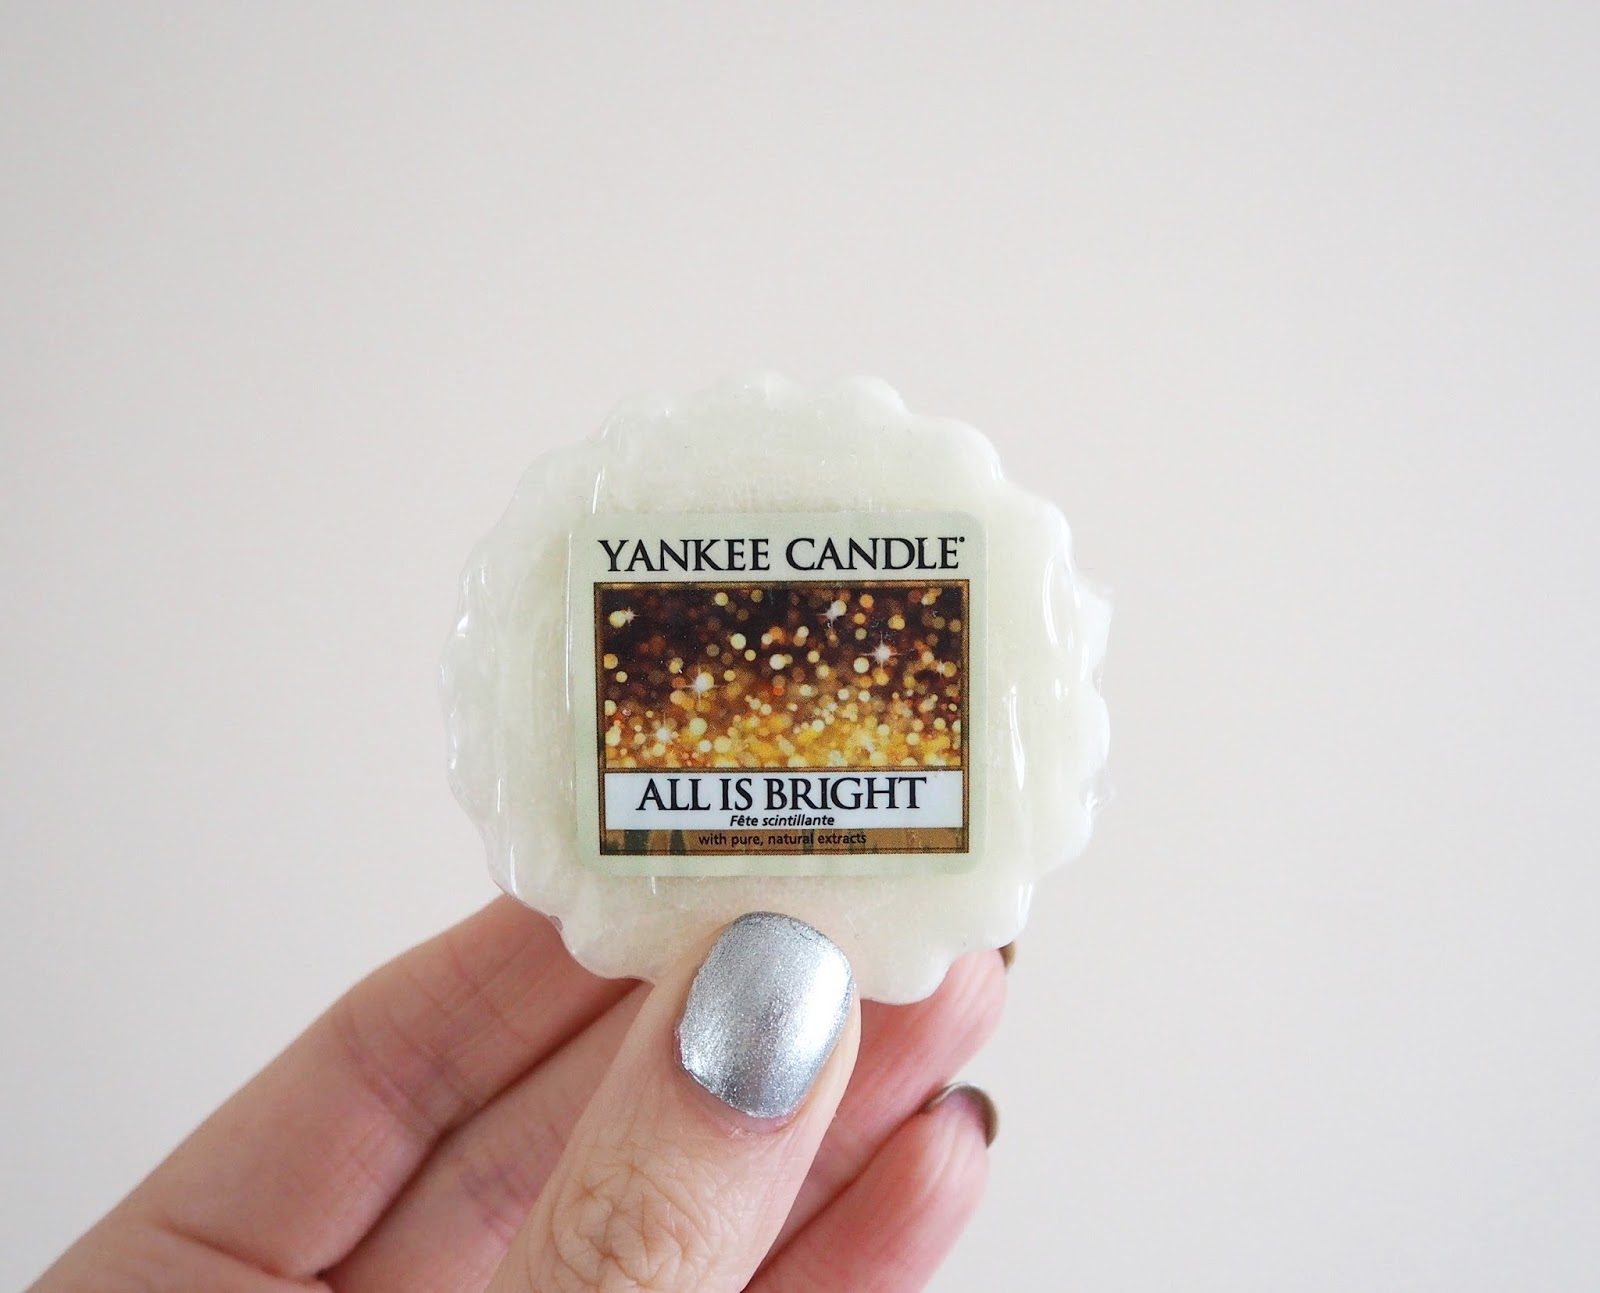 Yankee Candle Holiday Party Collection Review, Fragrance Review, Candle Review, Yankee Candles, UK Blogger, Lifestyle Blogger, Katie Kirk Loves